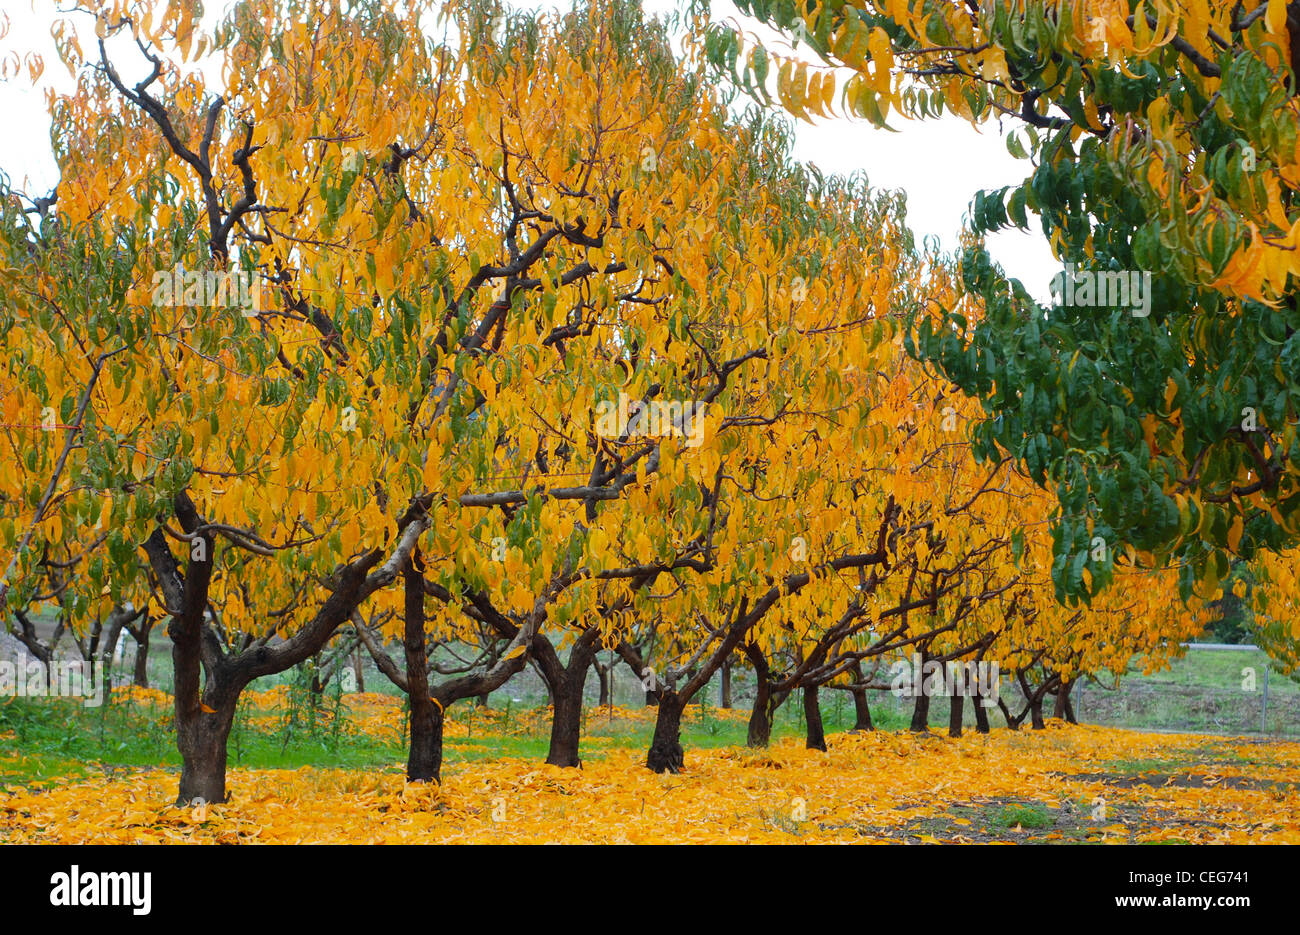 Peach orchard trees during the Fall/Autumn season.  Bright yellow and green leaves on trees and on the ground - Stock Image